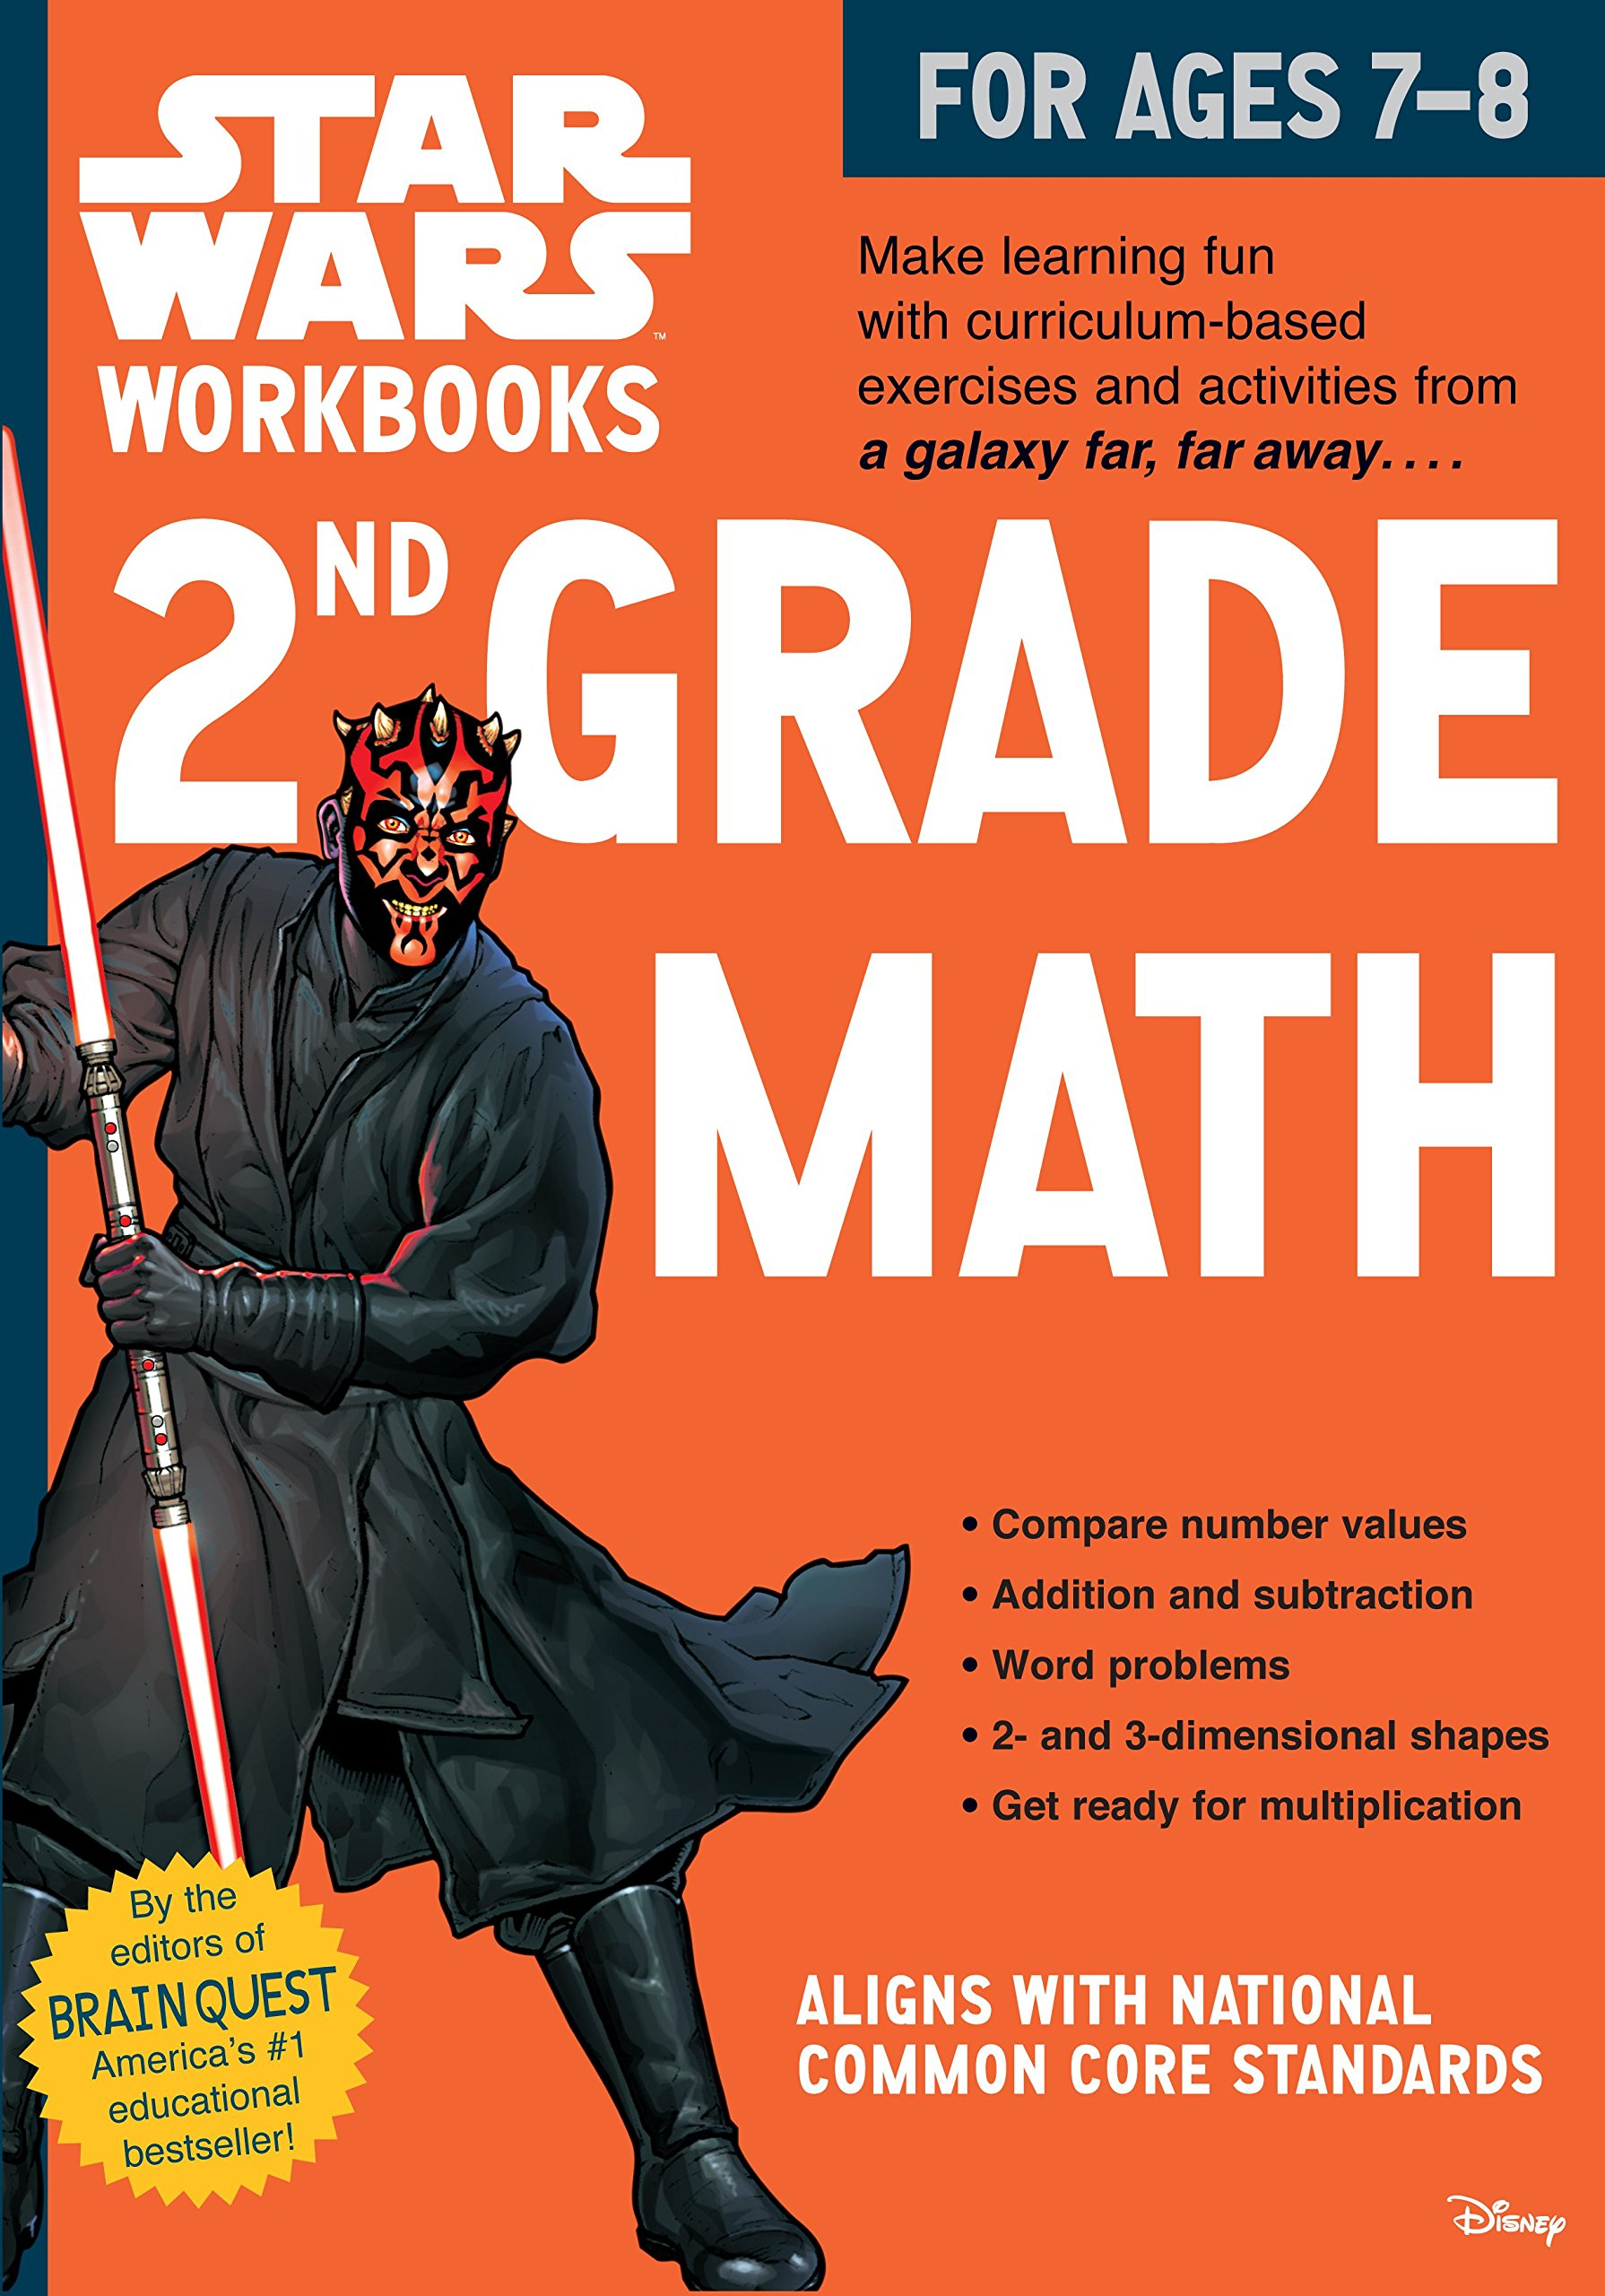 Image OfStar Wars 2nd Grade Math, For Ages 7-8